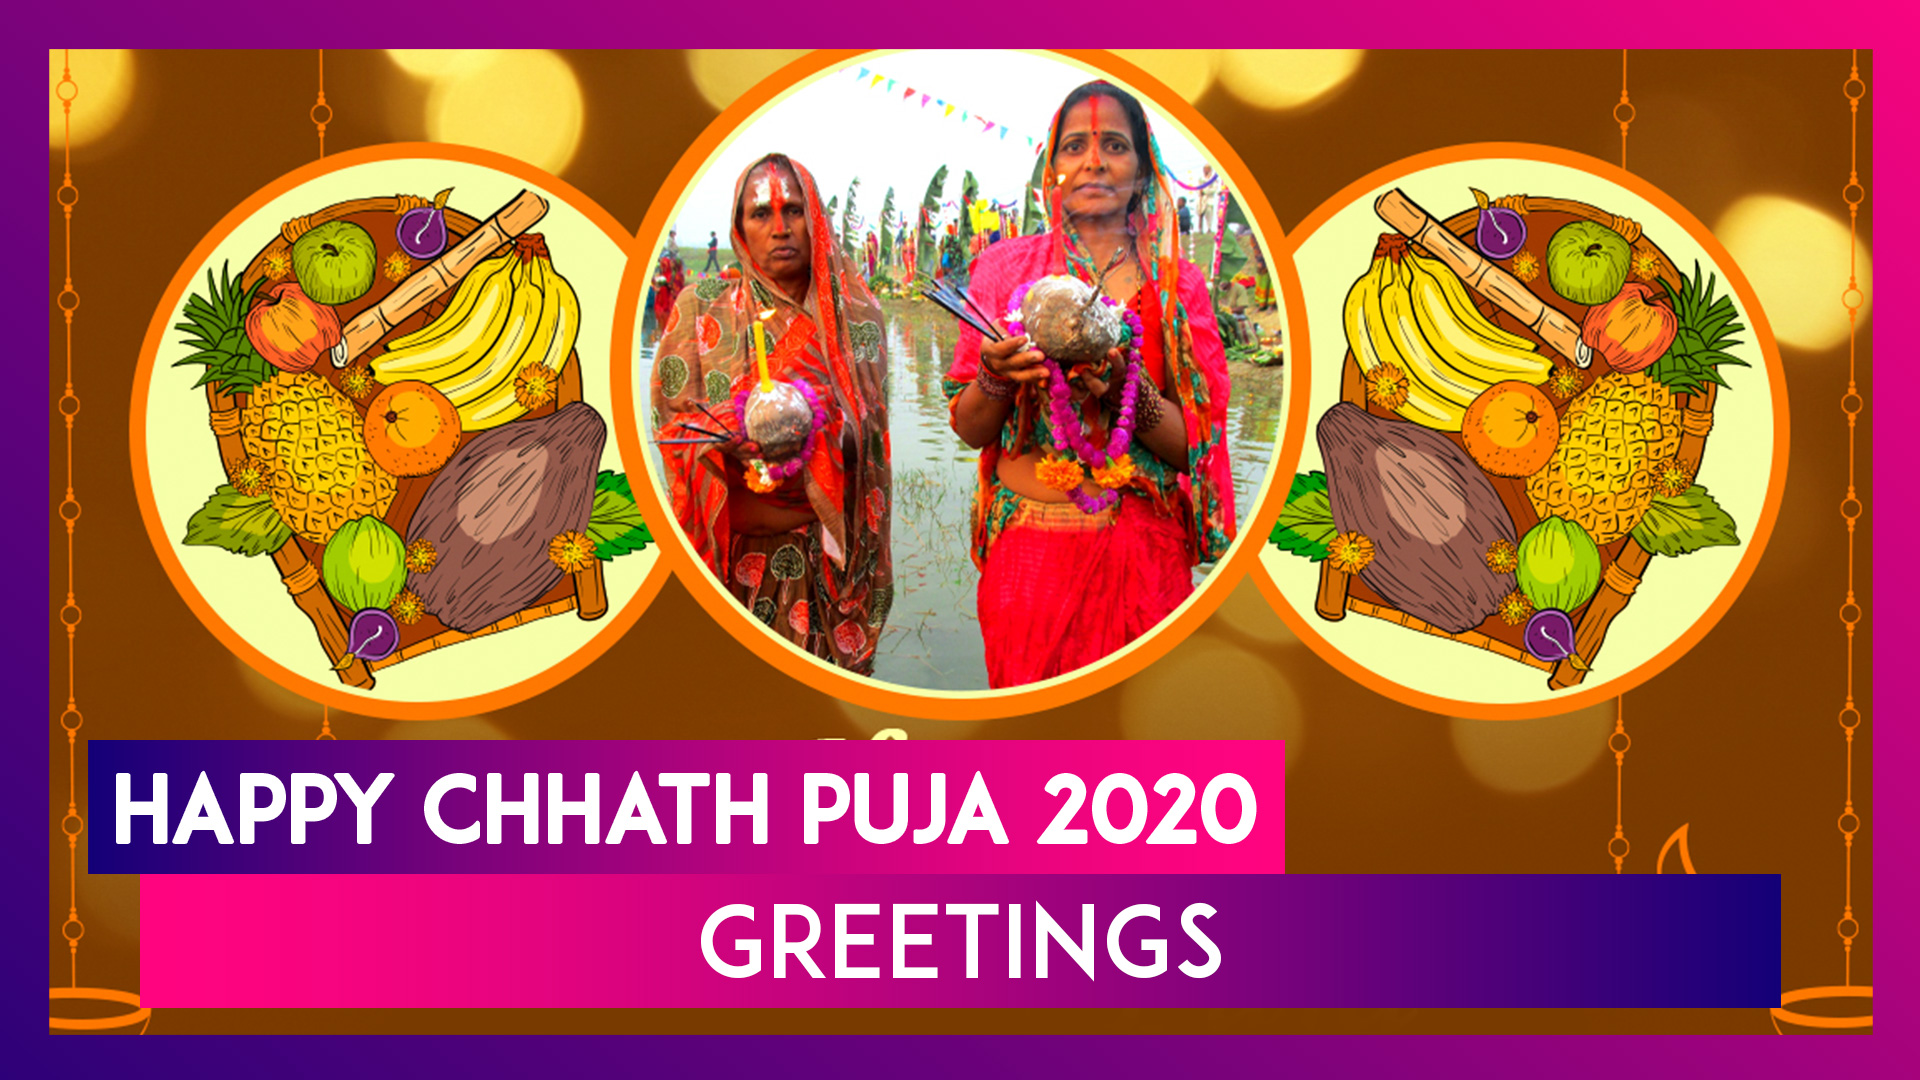 Happy Chhath Puja 2020 Greetings, Quotes, HD Images & Wishes For Your Friends & Family